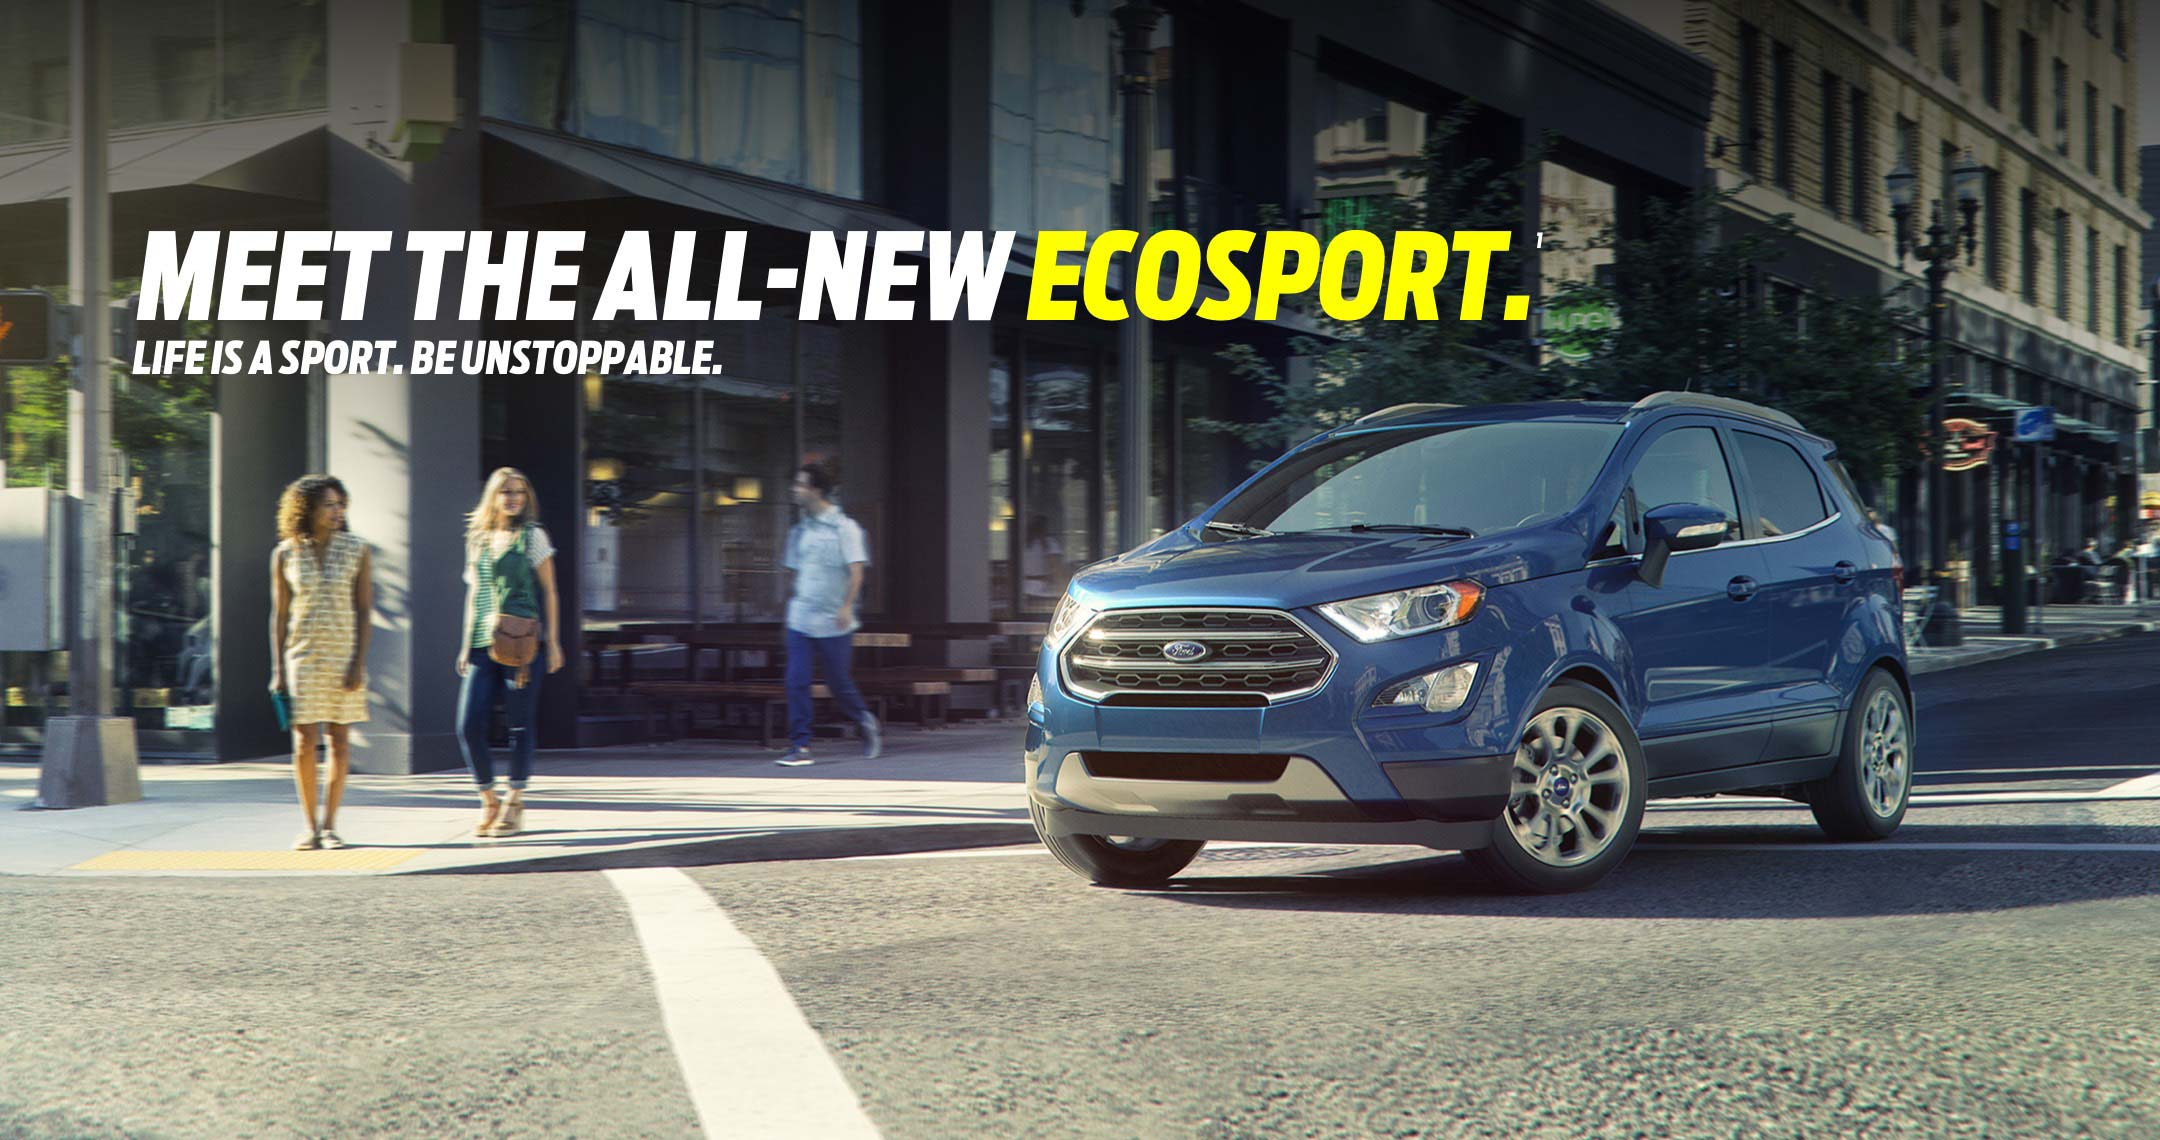 Go Small, Live Big with All-New EcoSport – Ford's Smallest SUV with the Biggest Personality